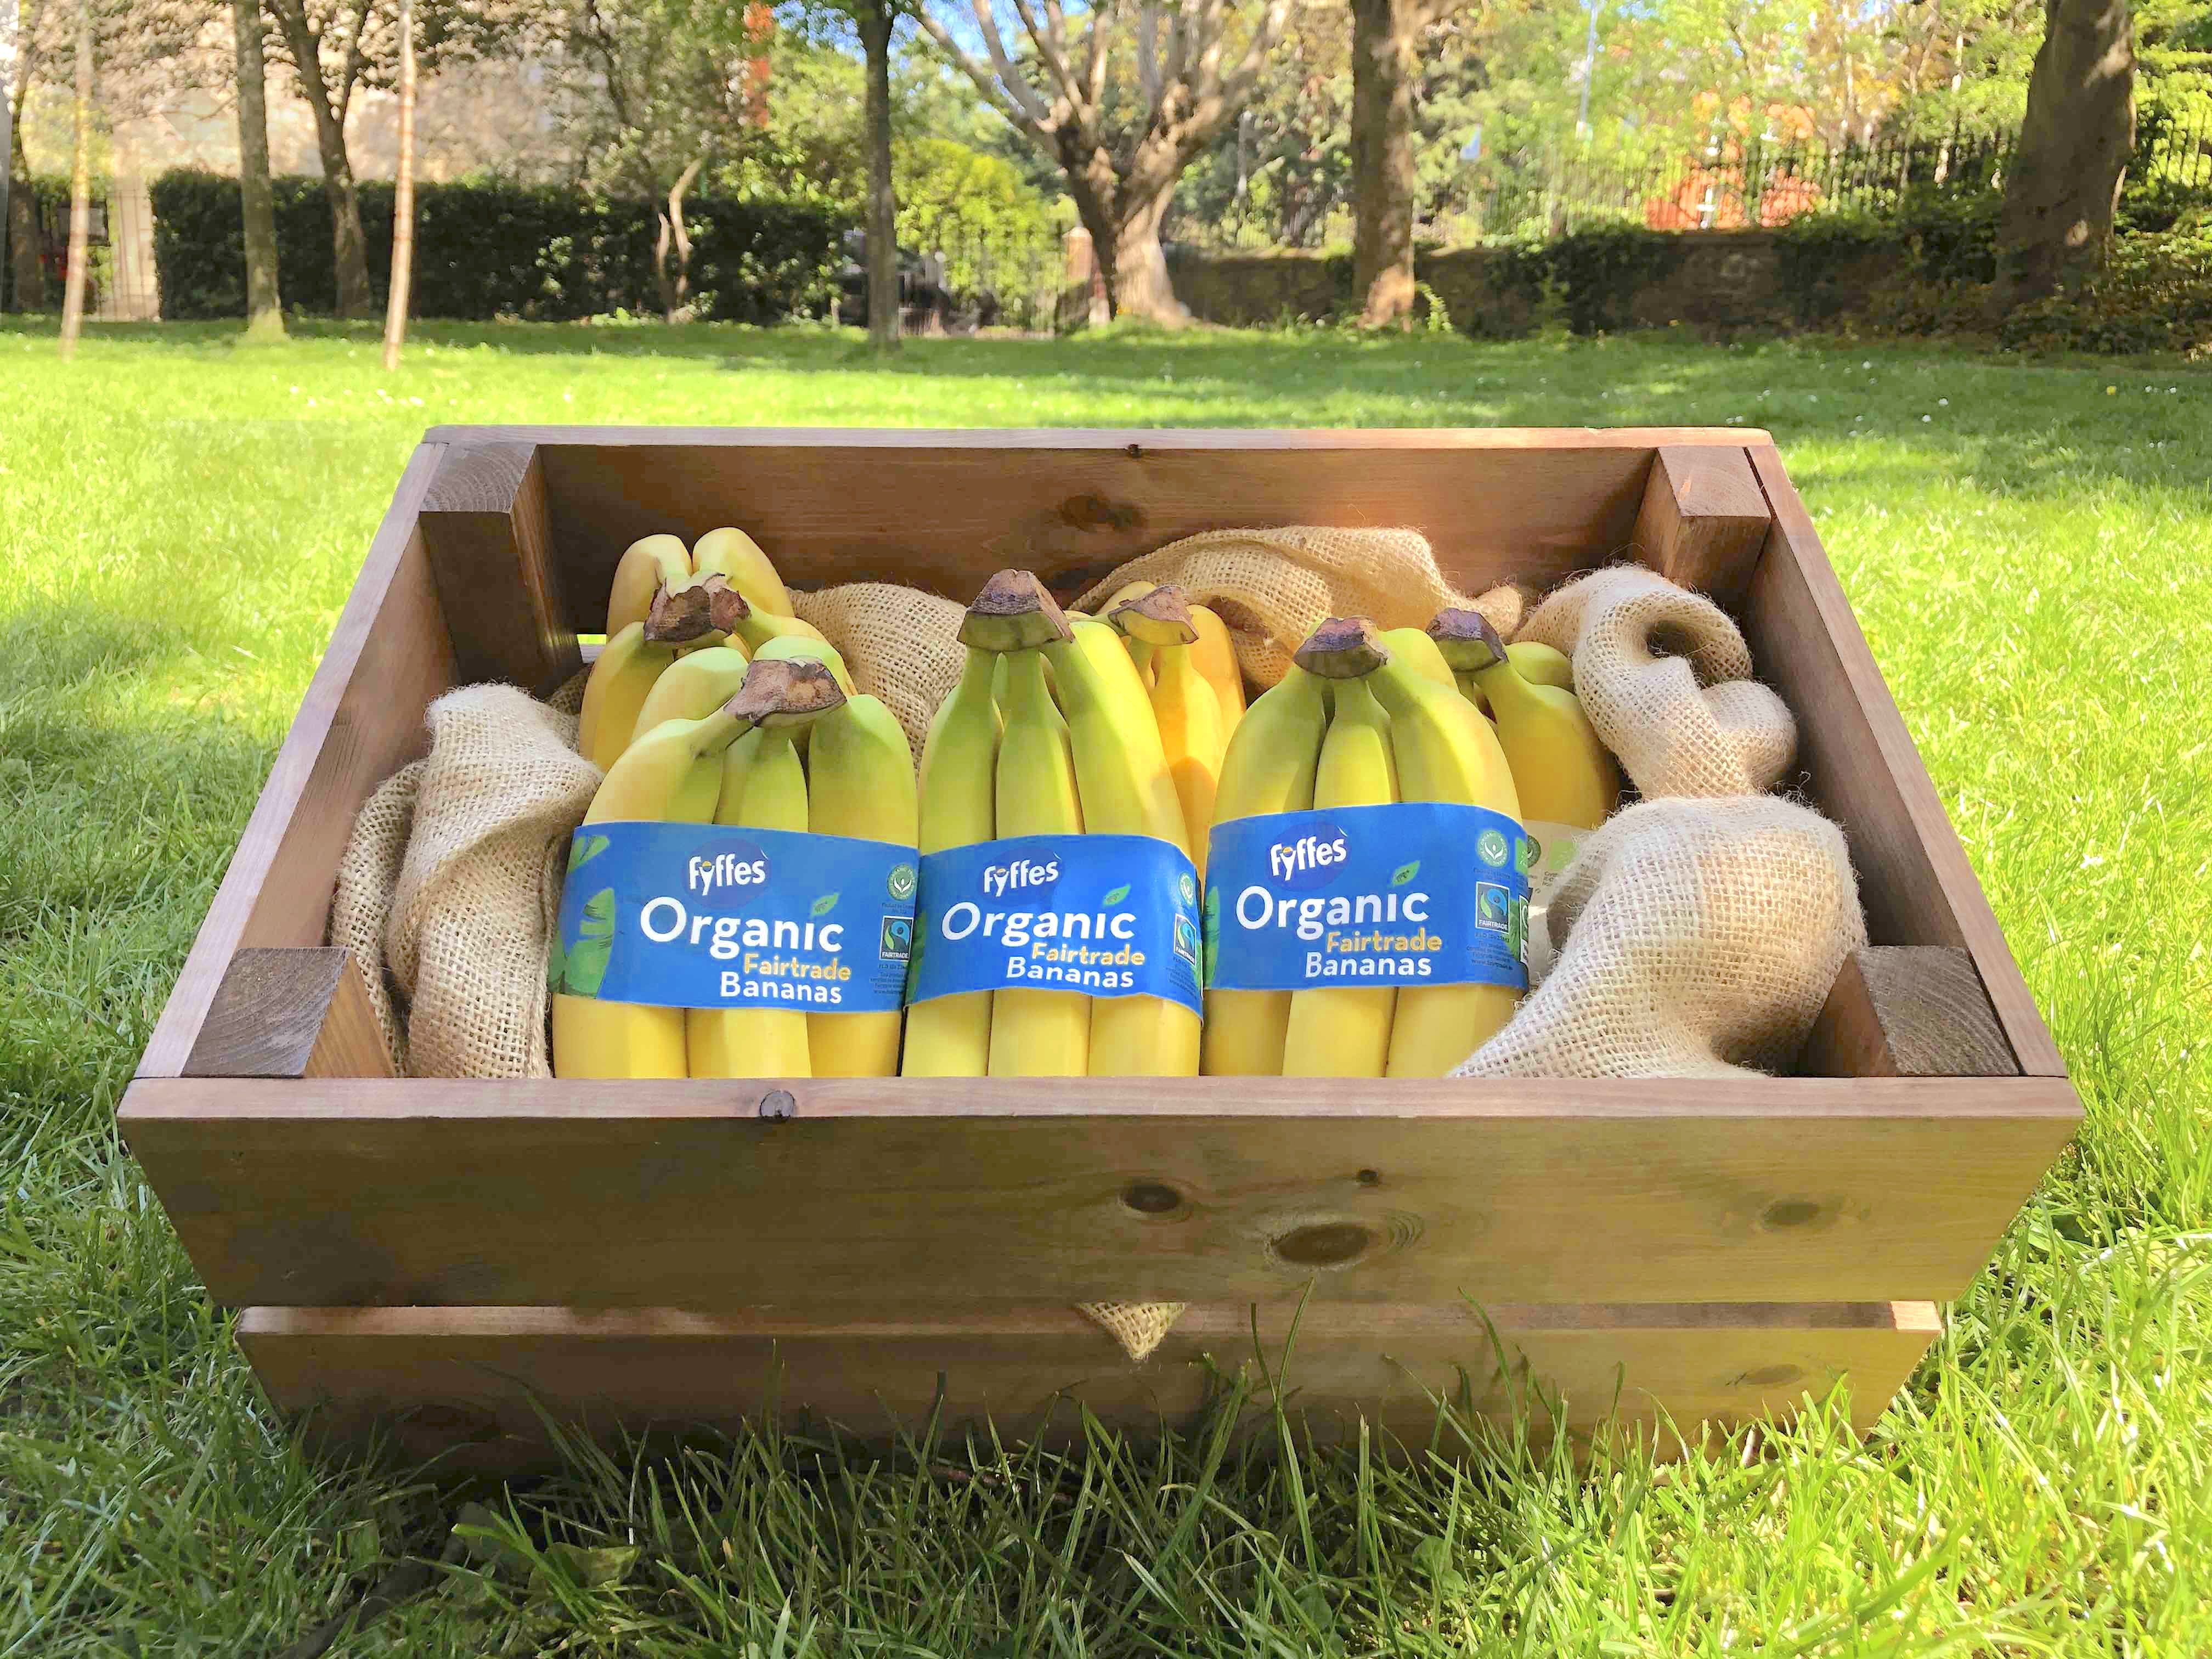 Fyffes Ireland Introduces New Reduced-packaging Banana Band